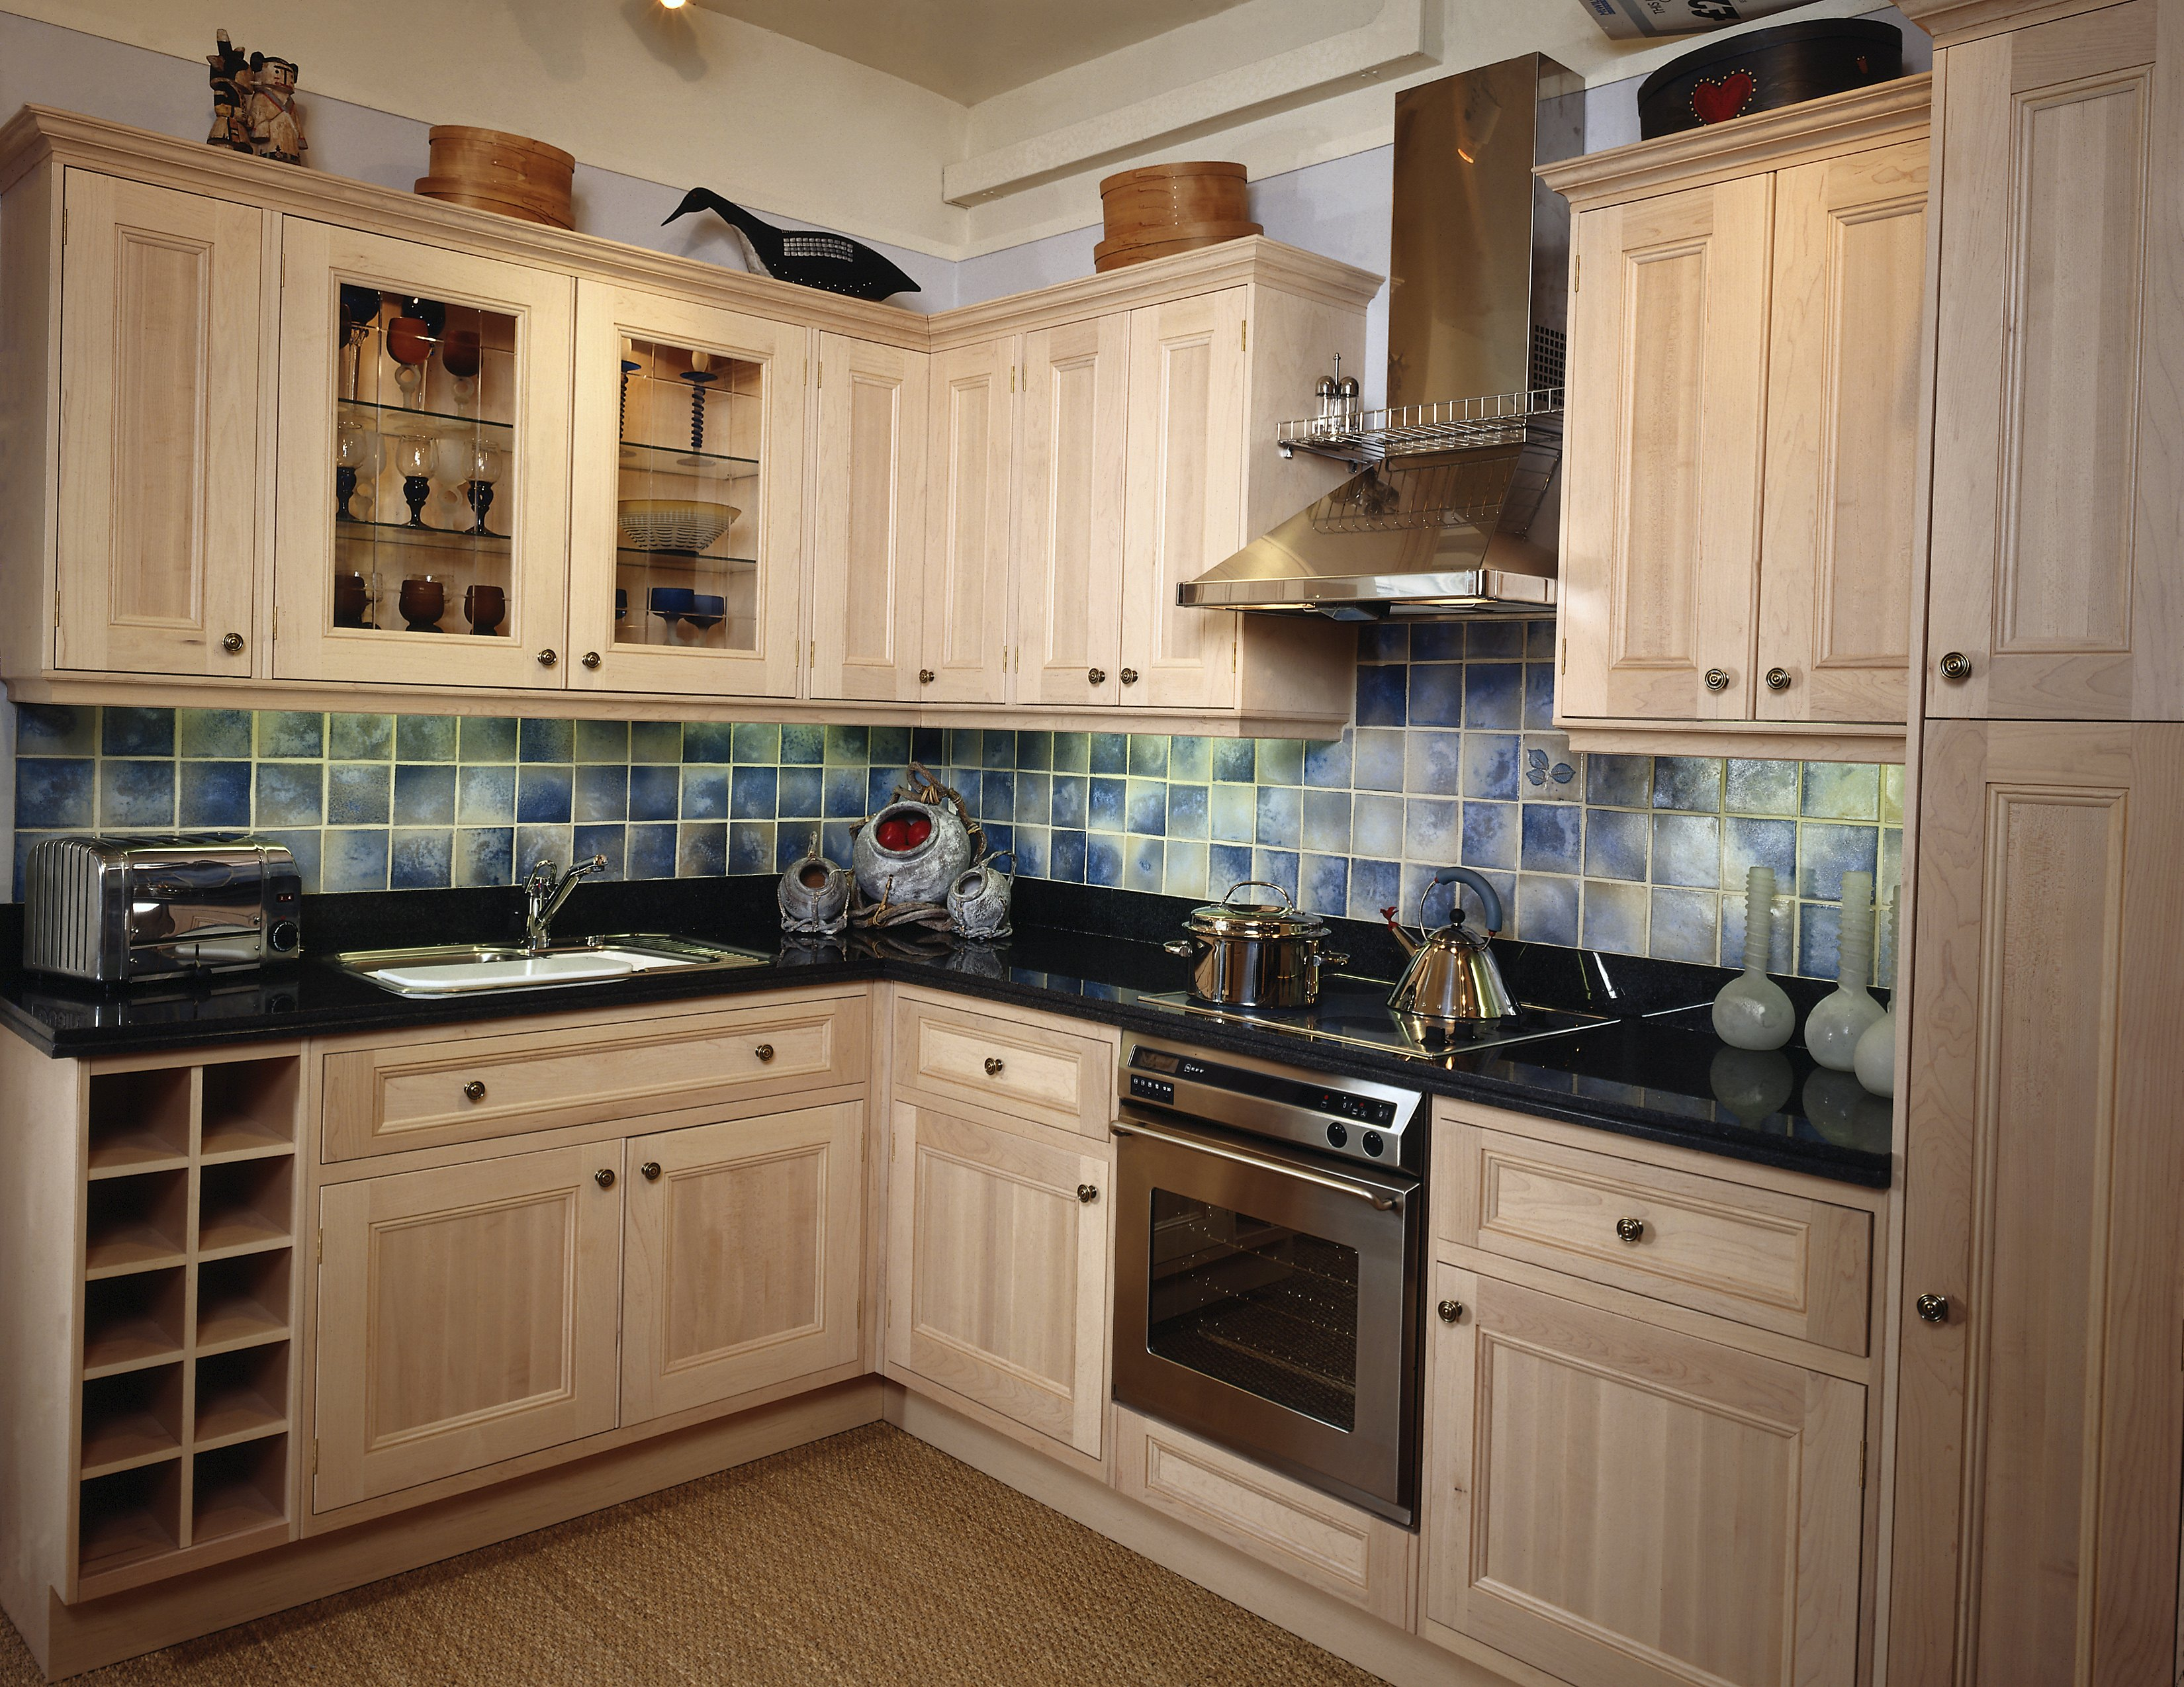 How To Add Molding To Kitchen Cabinets To Dress Them Up